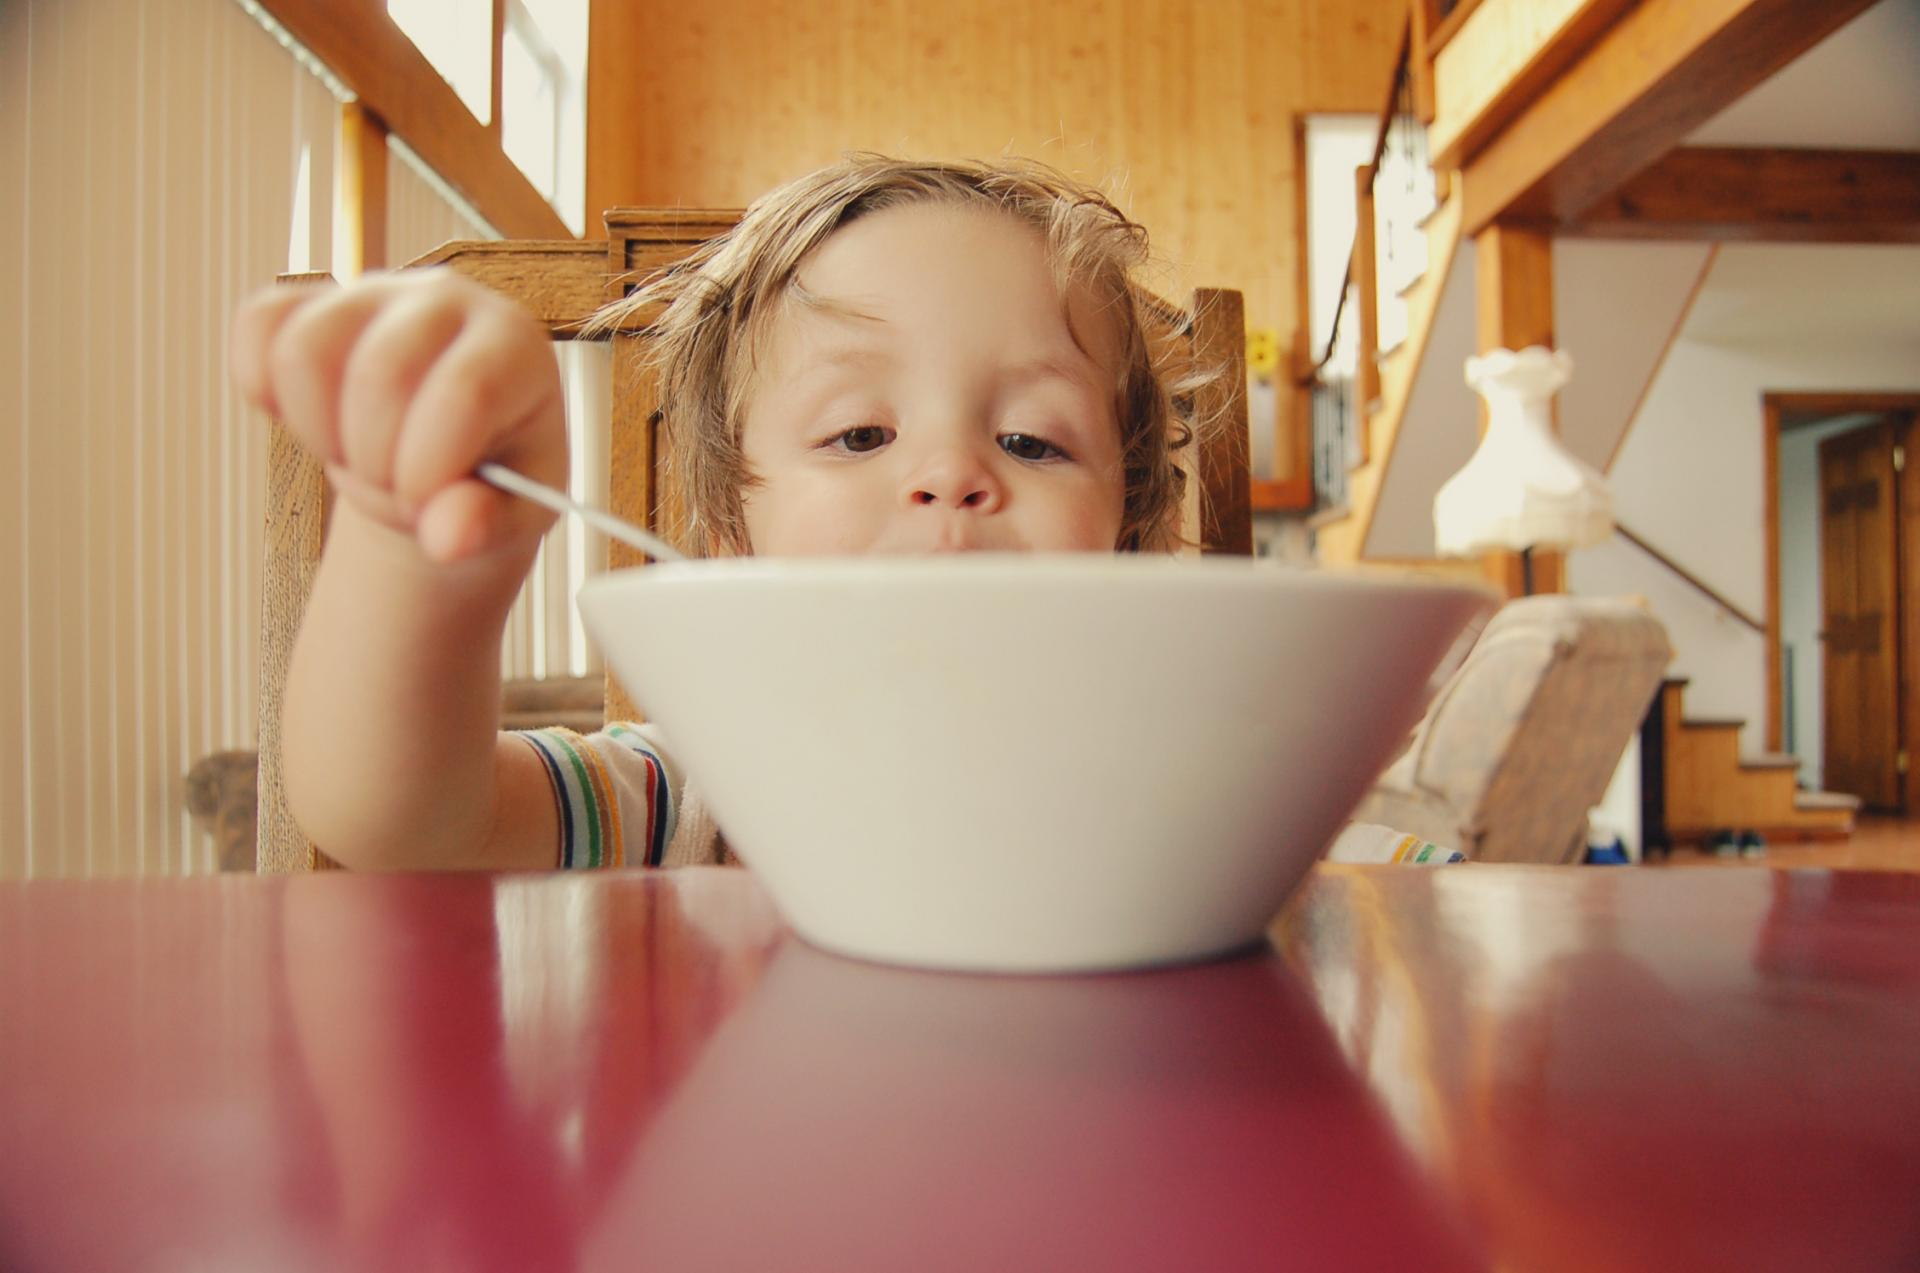 child eating food from a bowl